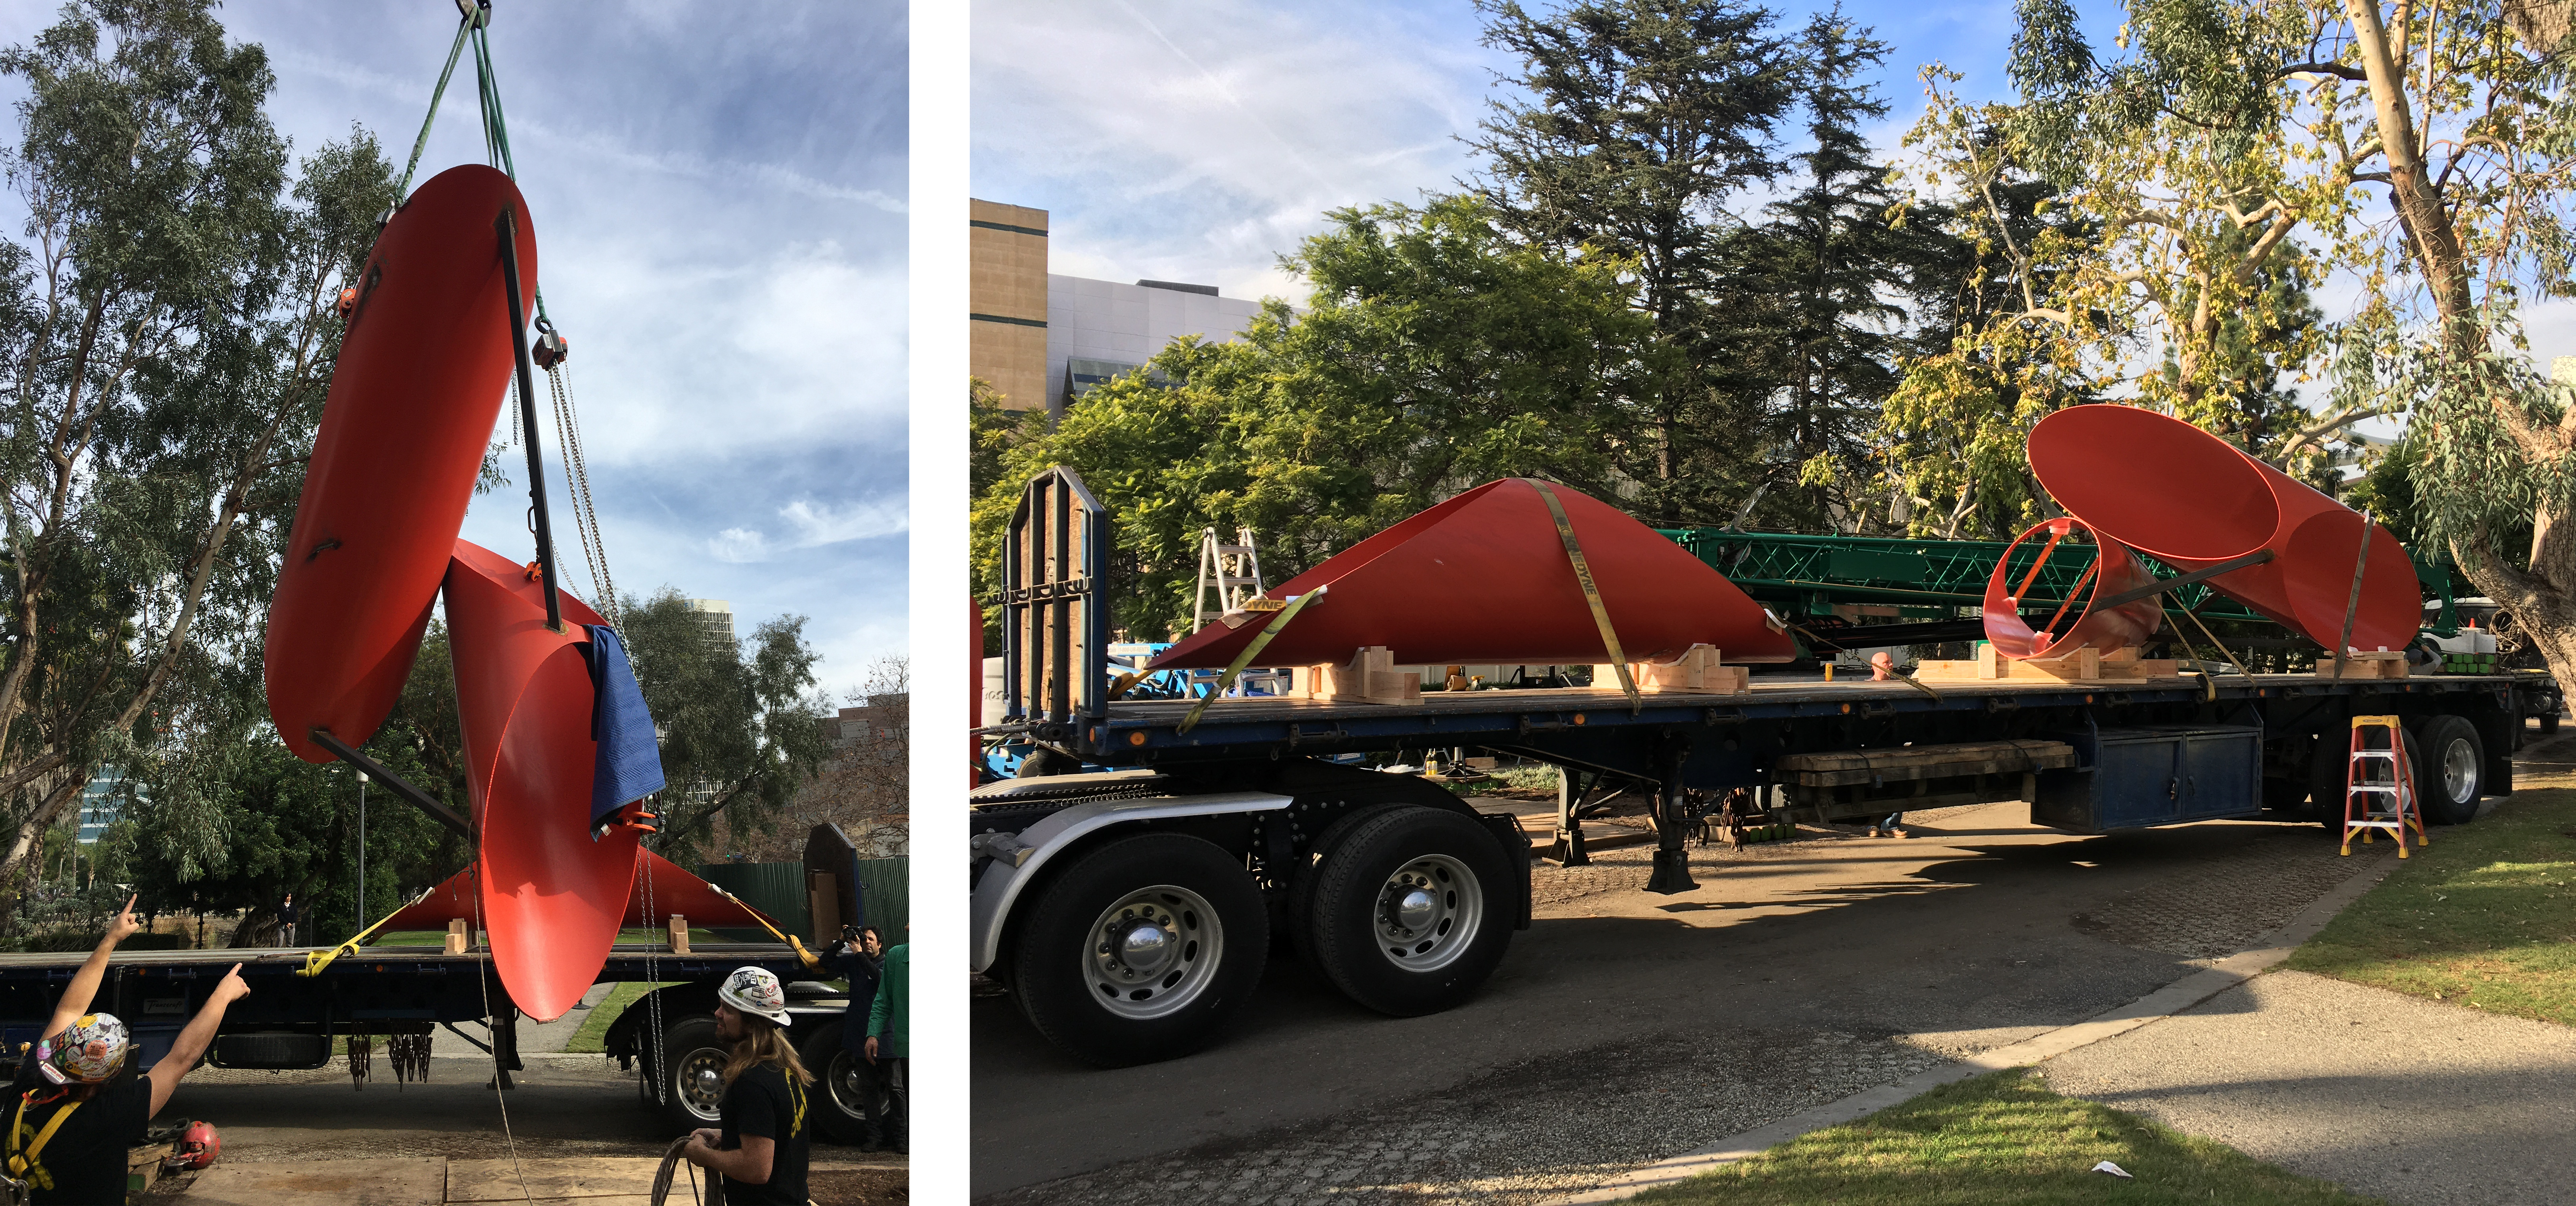 Both: Alexander Liberman, Phoenix, 1974, Los Angeles County Museum of Art, © The Alexander Liberman Trust, photos courtesy of Emory Marshall; Left: Luke and Peter discuss how to rotate the second freed piece to set onto the flatbed; Right: Two of three pieces secured to flatbed and ready for transport